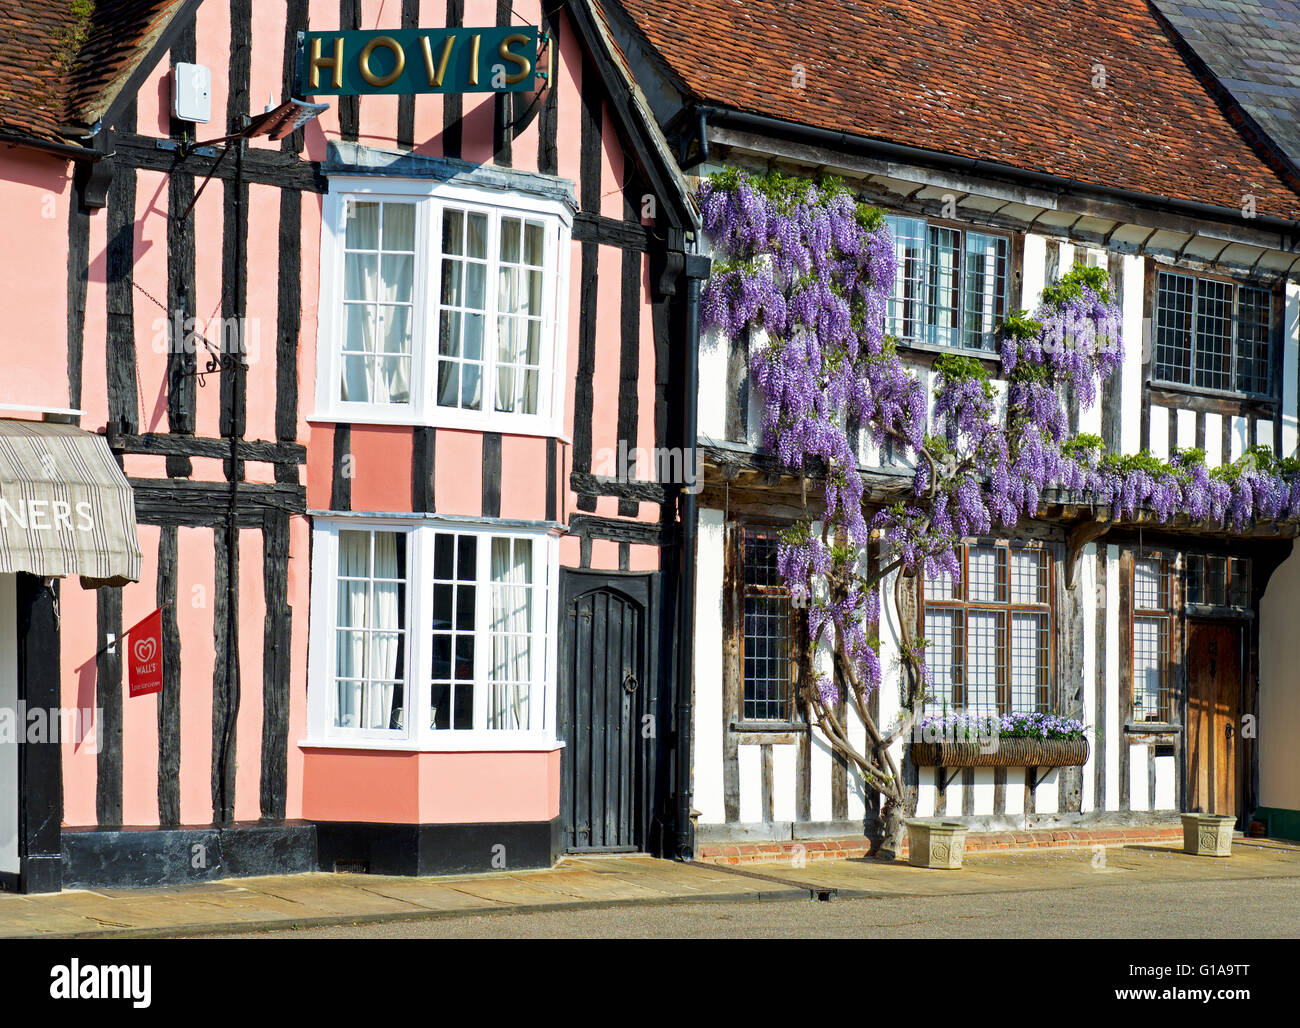 Half-timbered houses in the village of Lavenham, Suffolk, England UK - Stock Image